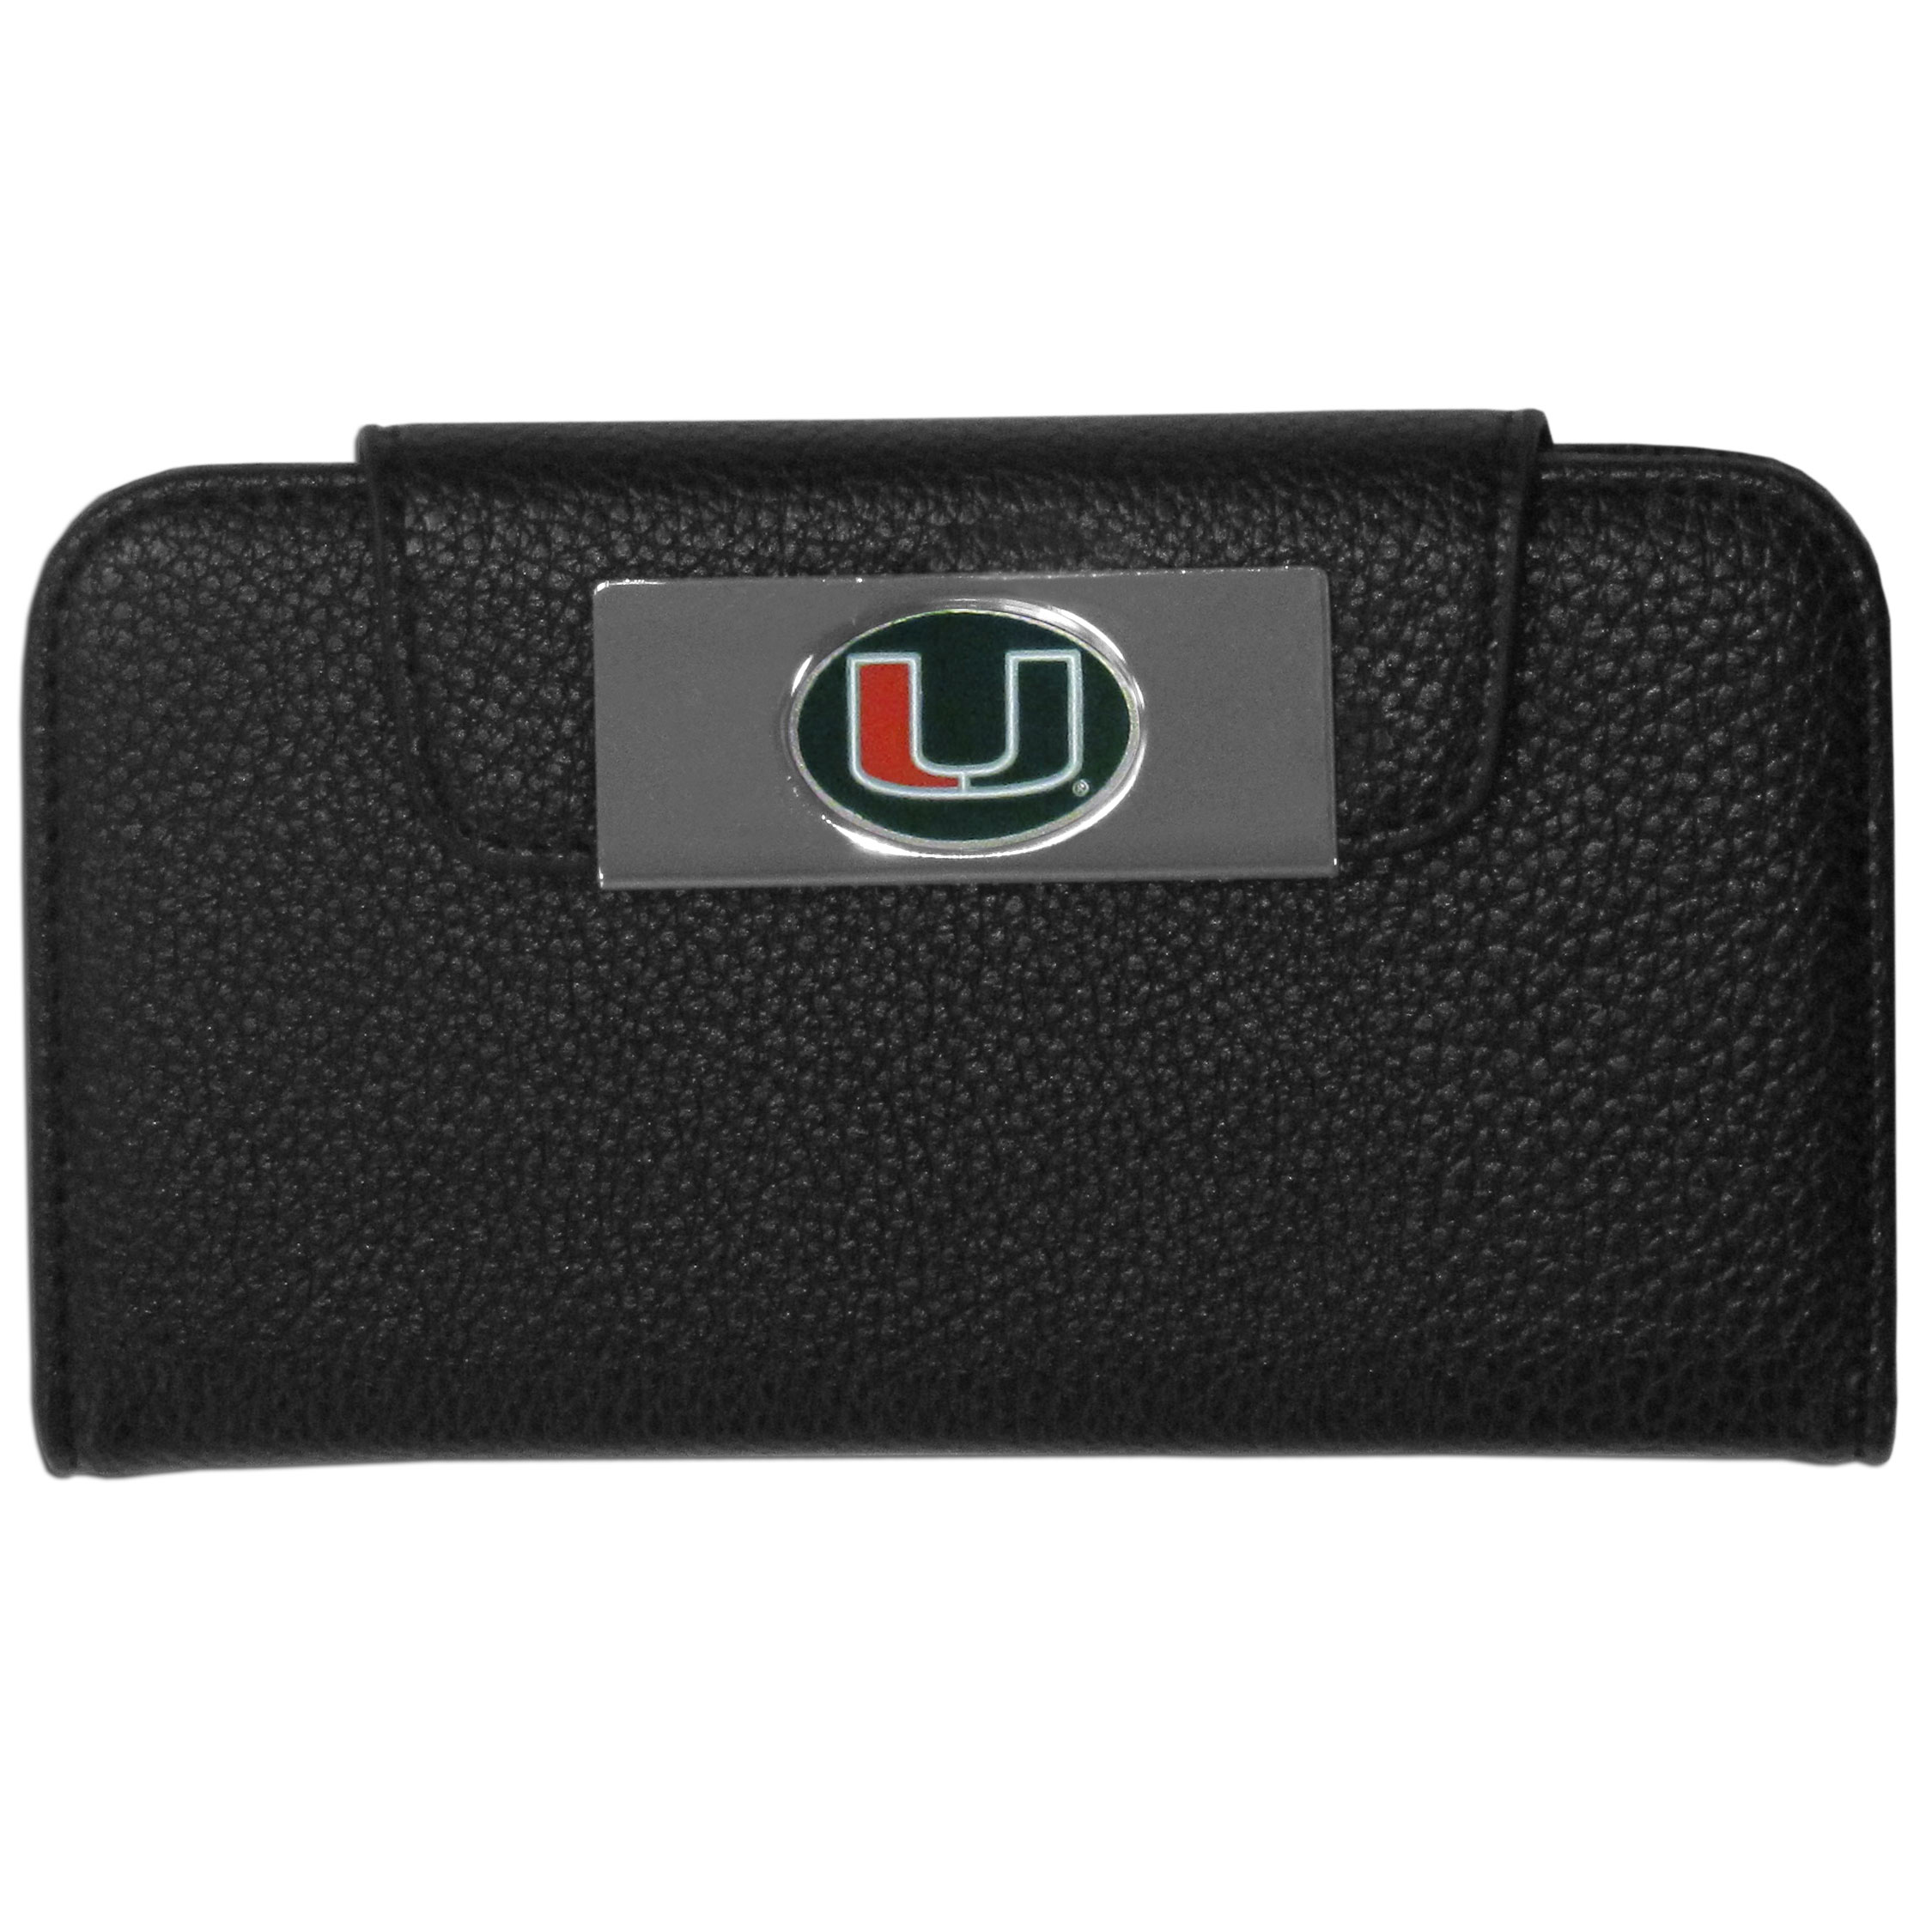 Miami Hurricanes Samsung Galaxy S4 Wallet Case - This new & wildly popular case is ideal for those who like to travel light! The stylish case has an inner hard shell that securely holds your phone while allowing complete access to the phone's functionality. The flip cover has slots for credit cards, business cards and identification. The magnetic flip cover has a metal Miami Hurricanes emblem on a high polish chrome backing. Fits the Samsung Galaxy S4